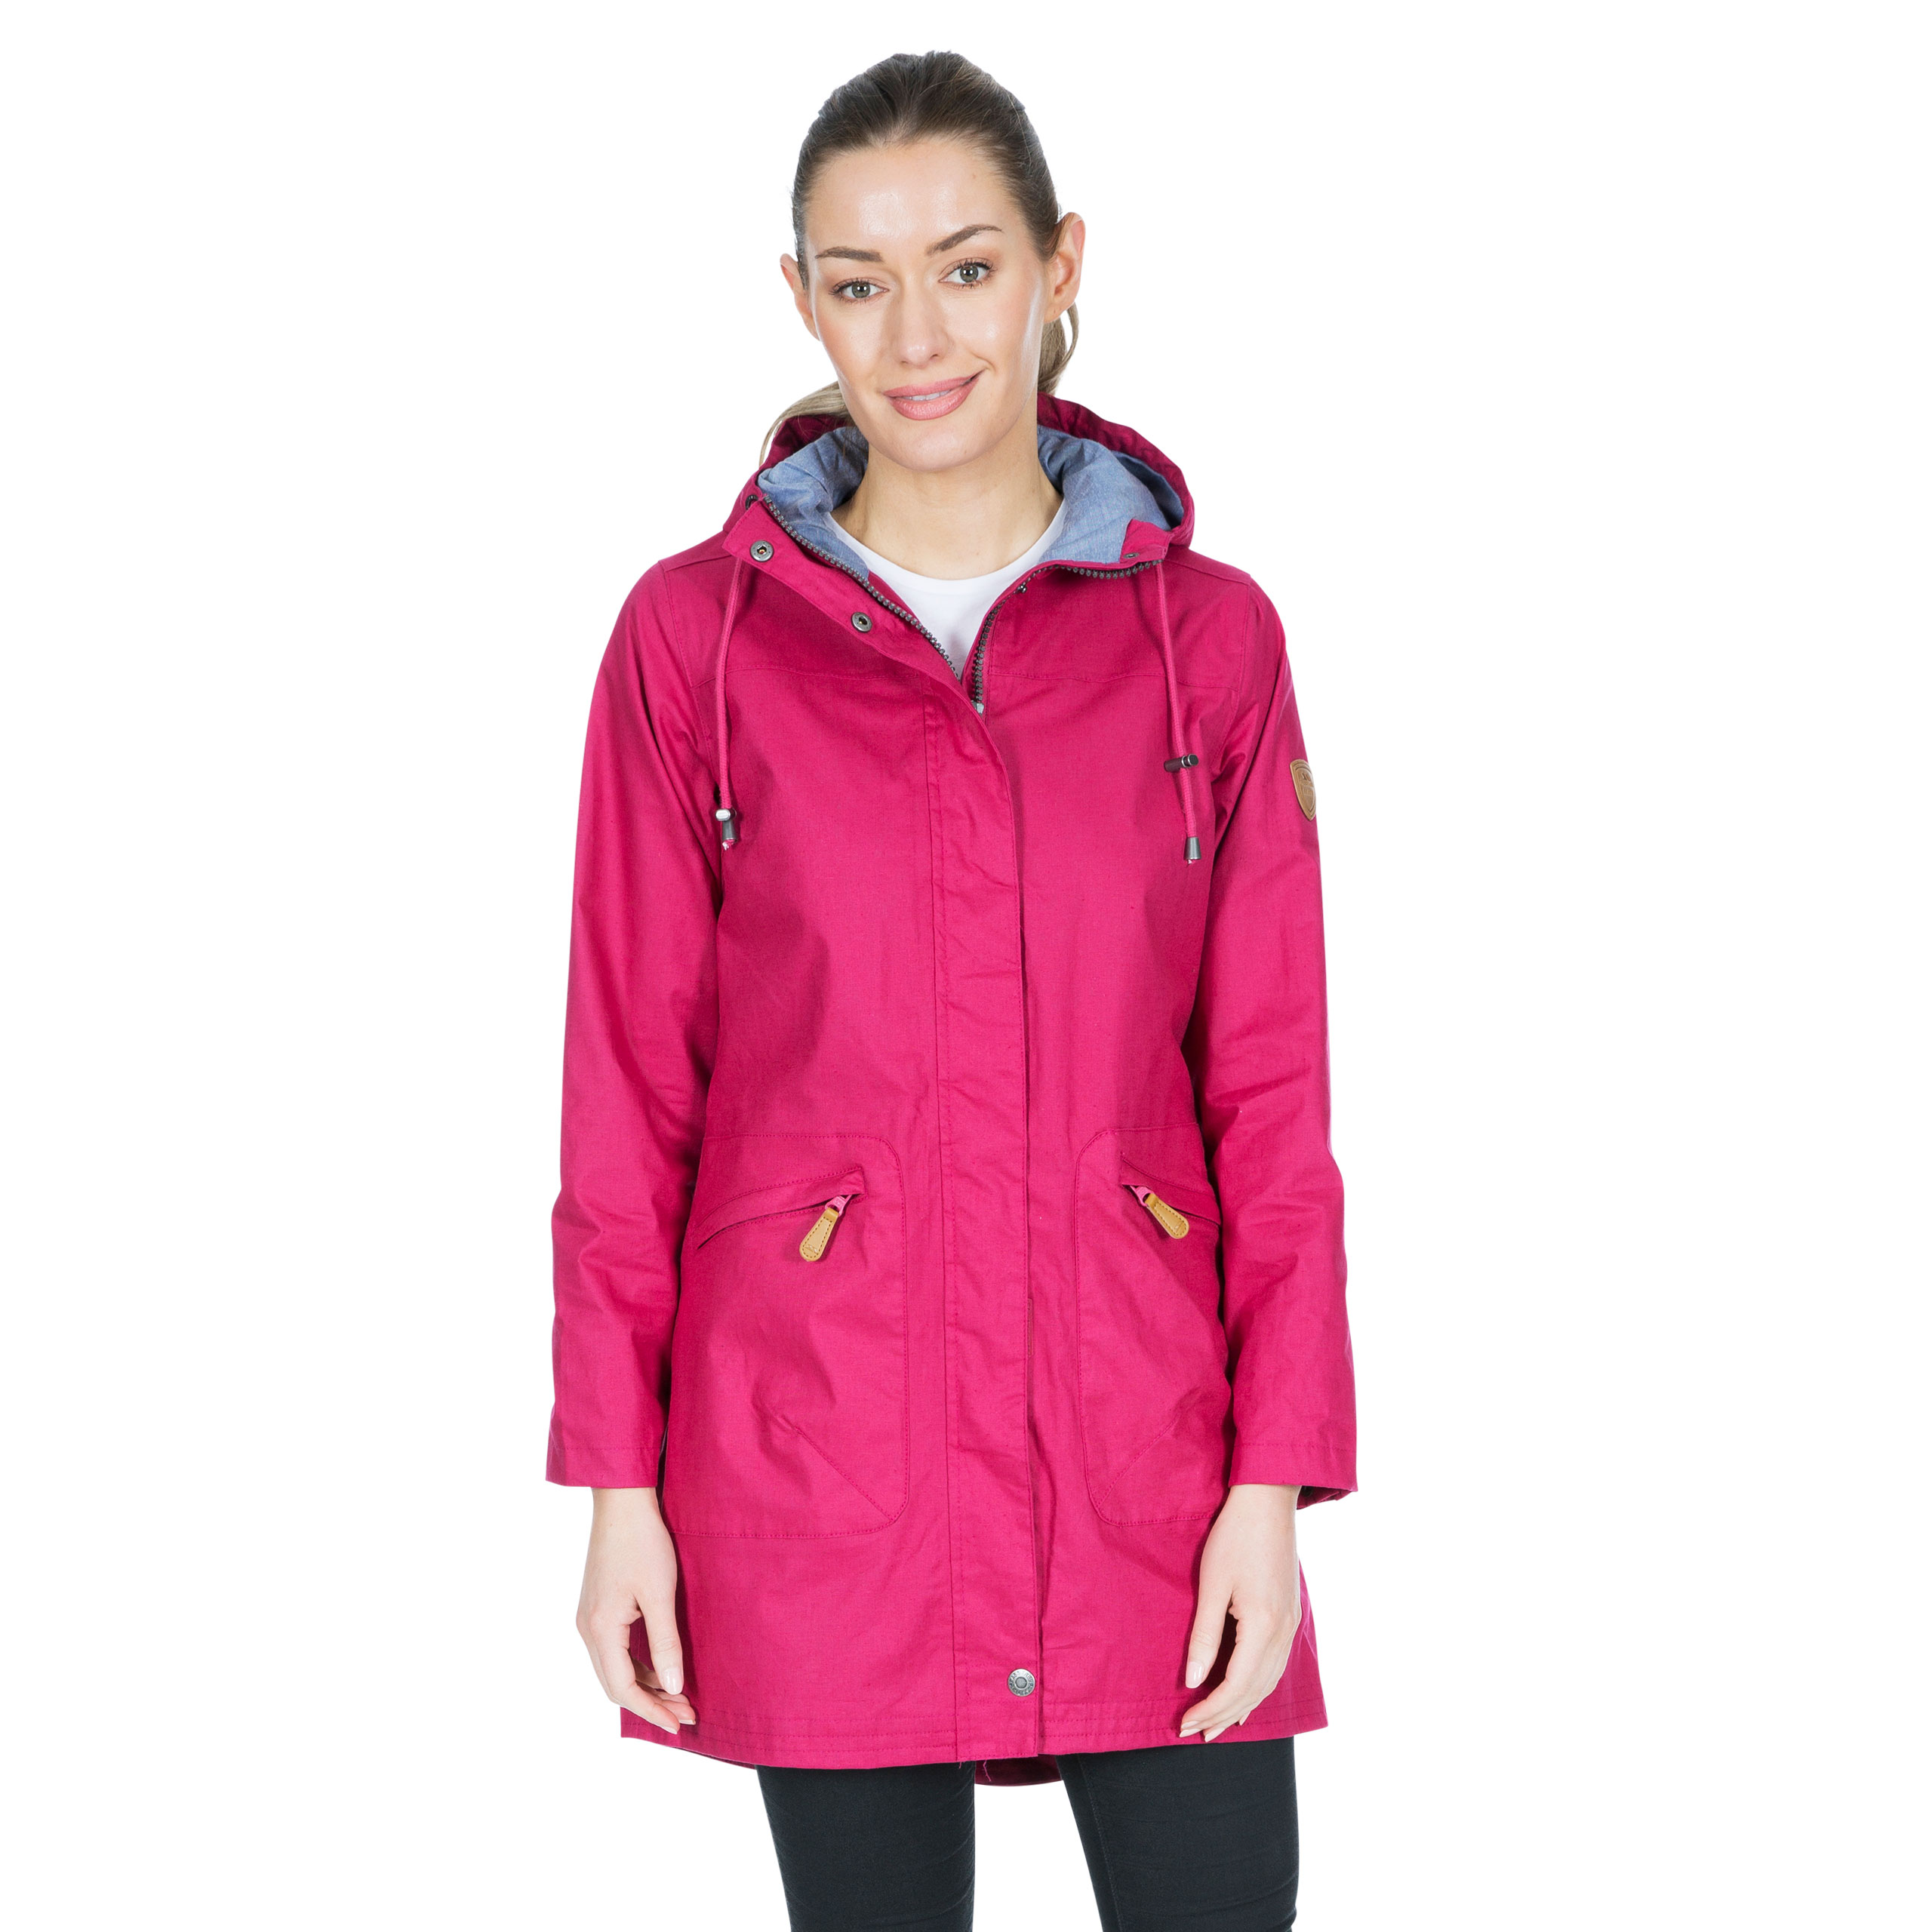 Trespass-Womens-Waterproof-Jacket-Longline-Pink-Navy-Hooded-Raincoat thumbnail 14